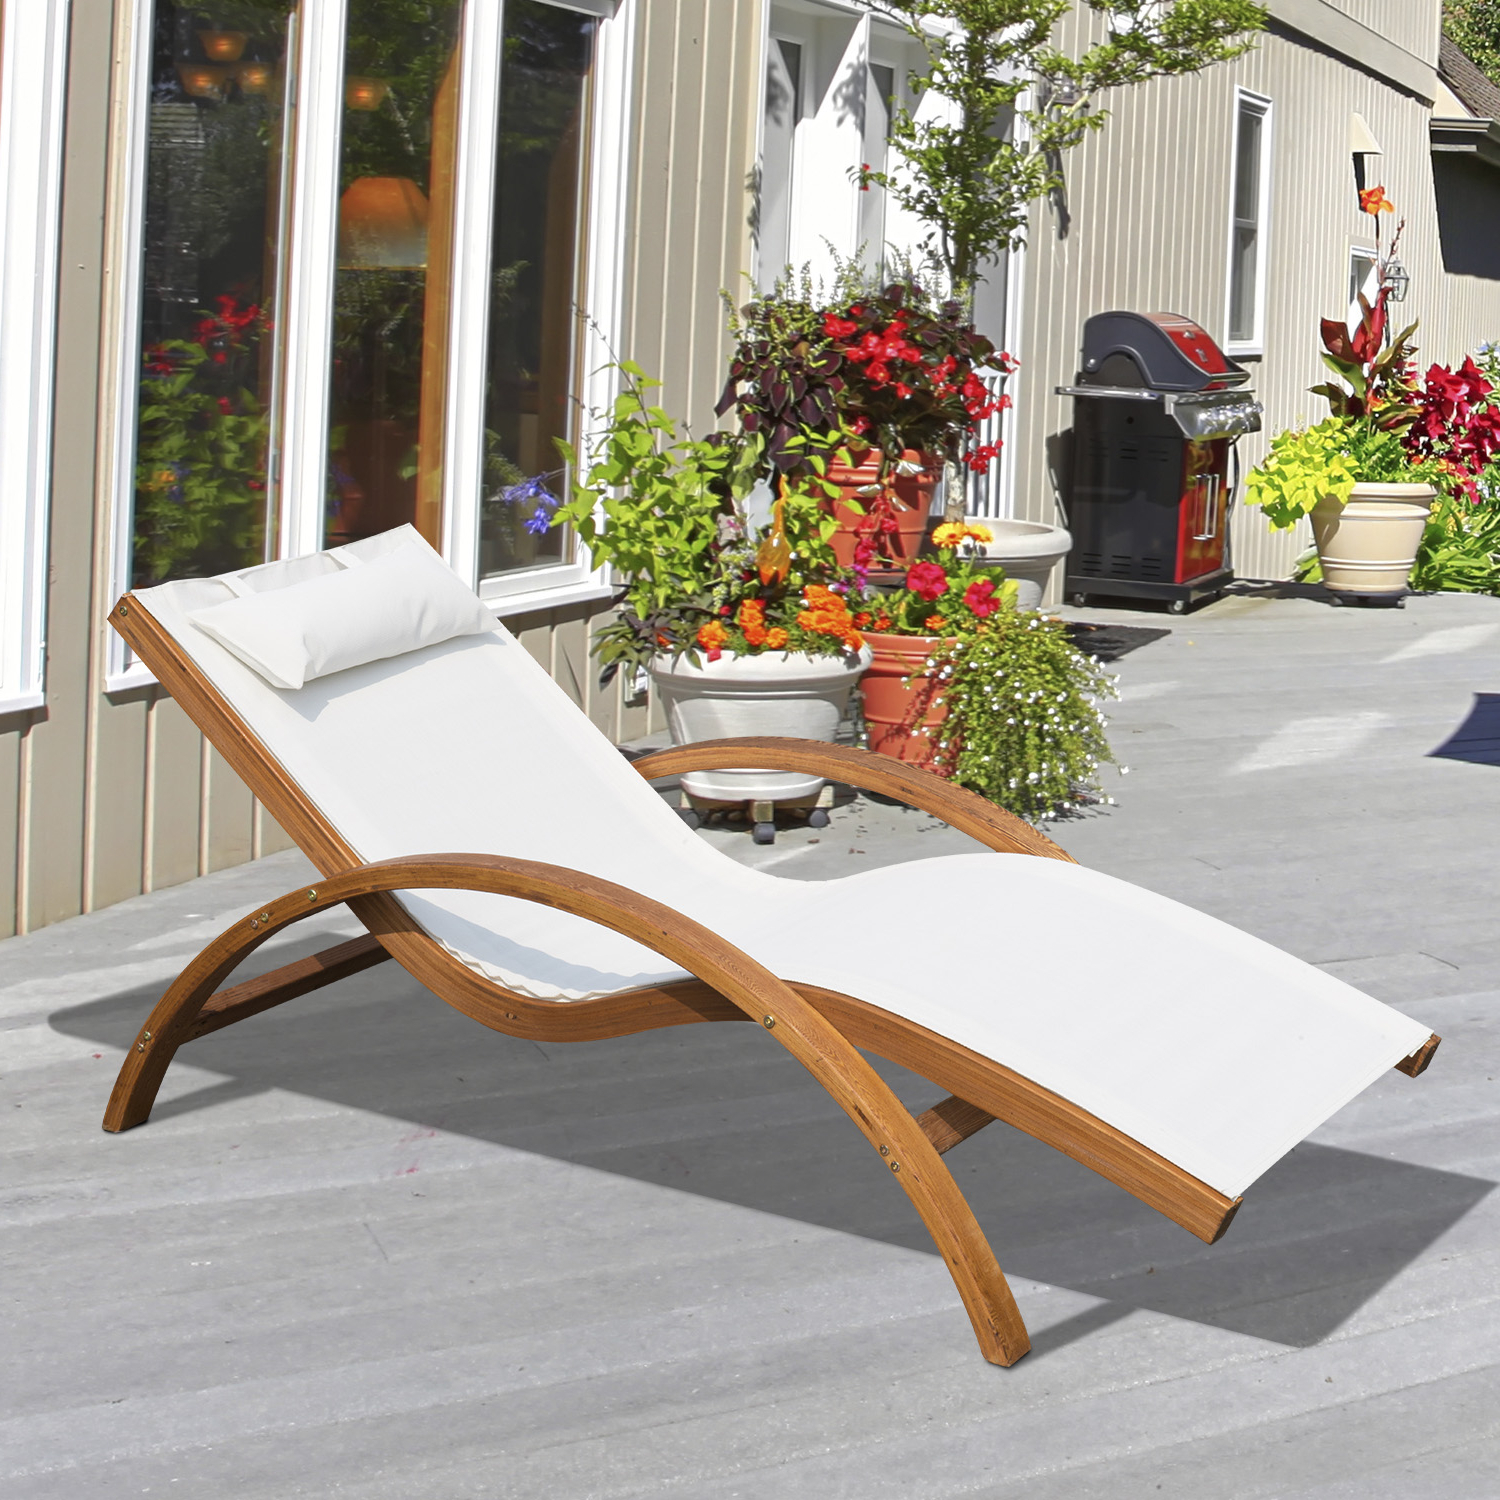 Outsunny Outdoor Wood Sling Chaise Lounge Reclining Garden Mesh Lounger  Patio Chair With Headrest Cream Within Well Liked Reclining Sling Chaise Lounges (View 14 of 25)